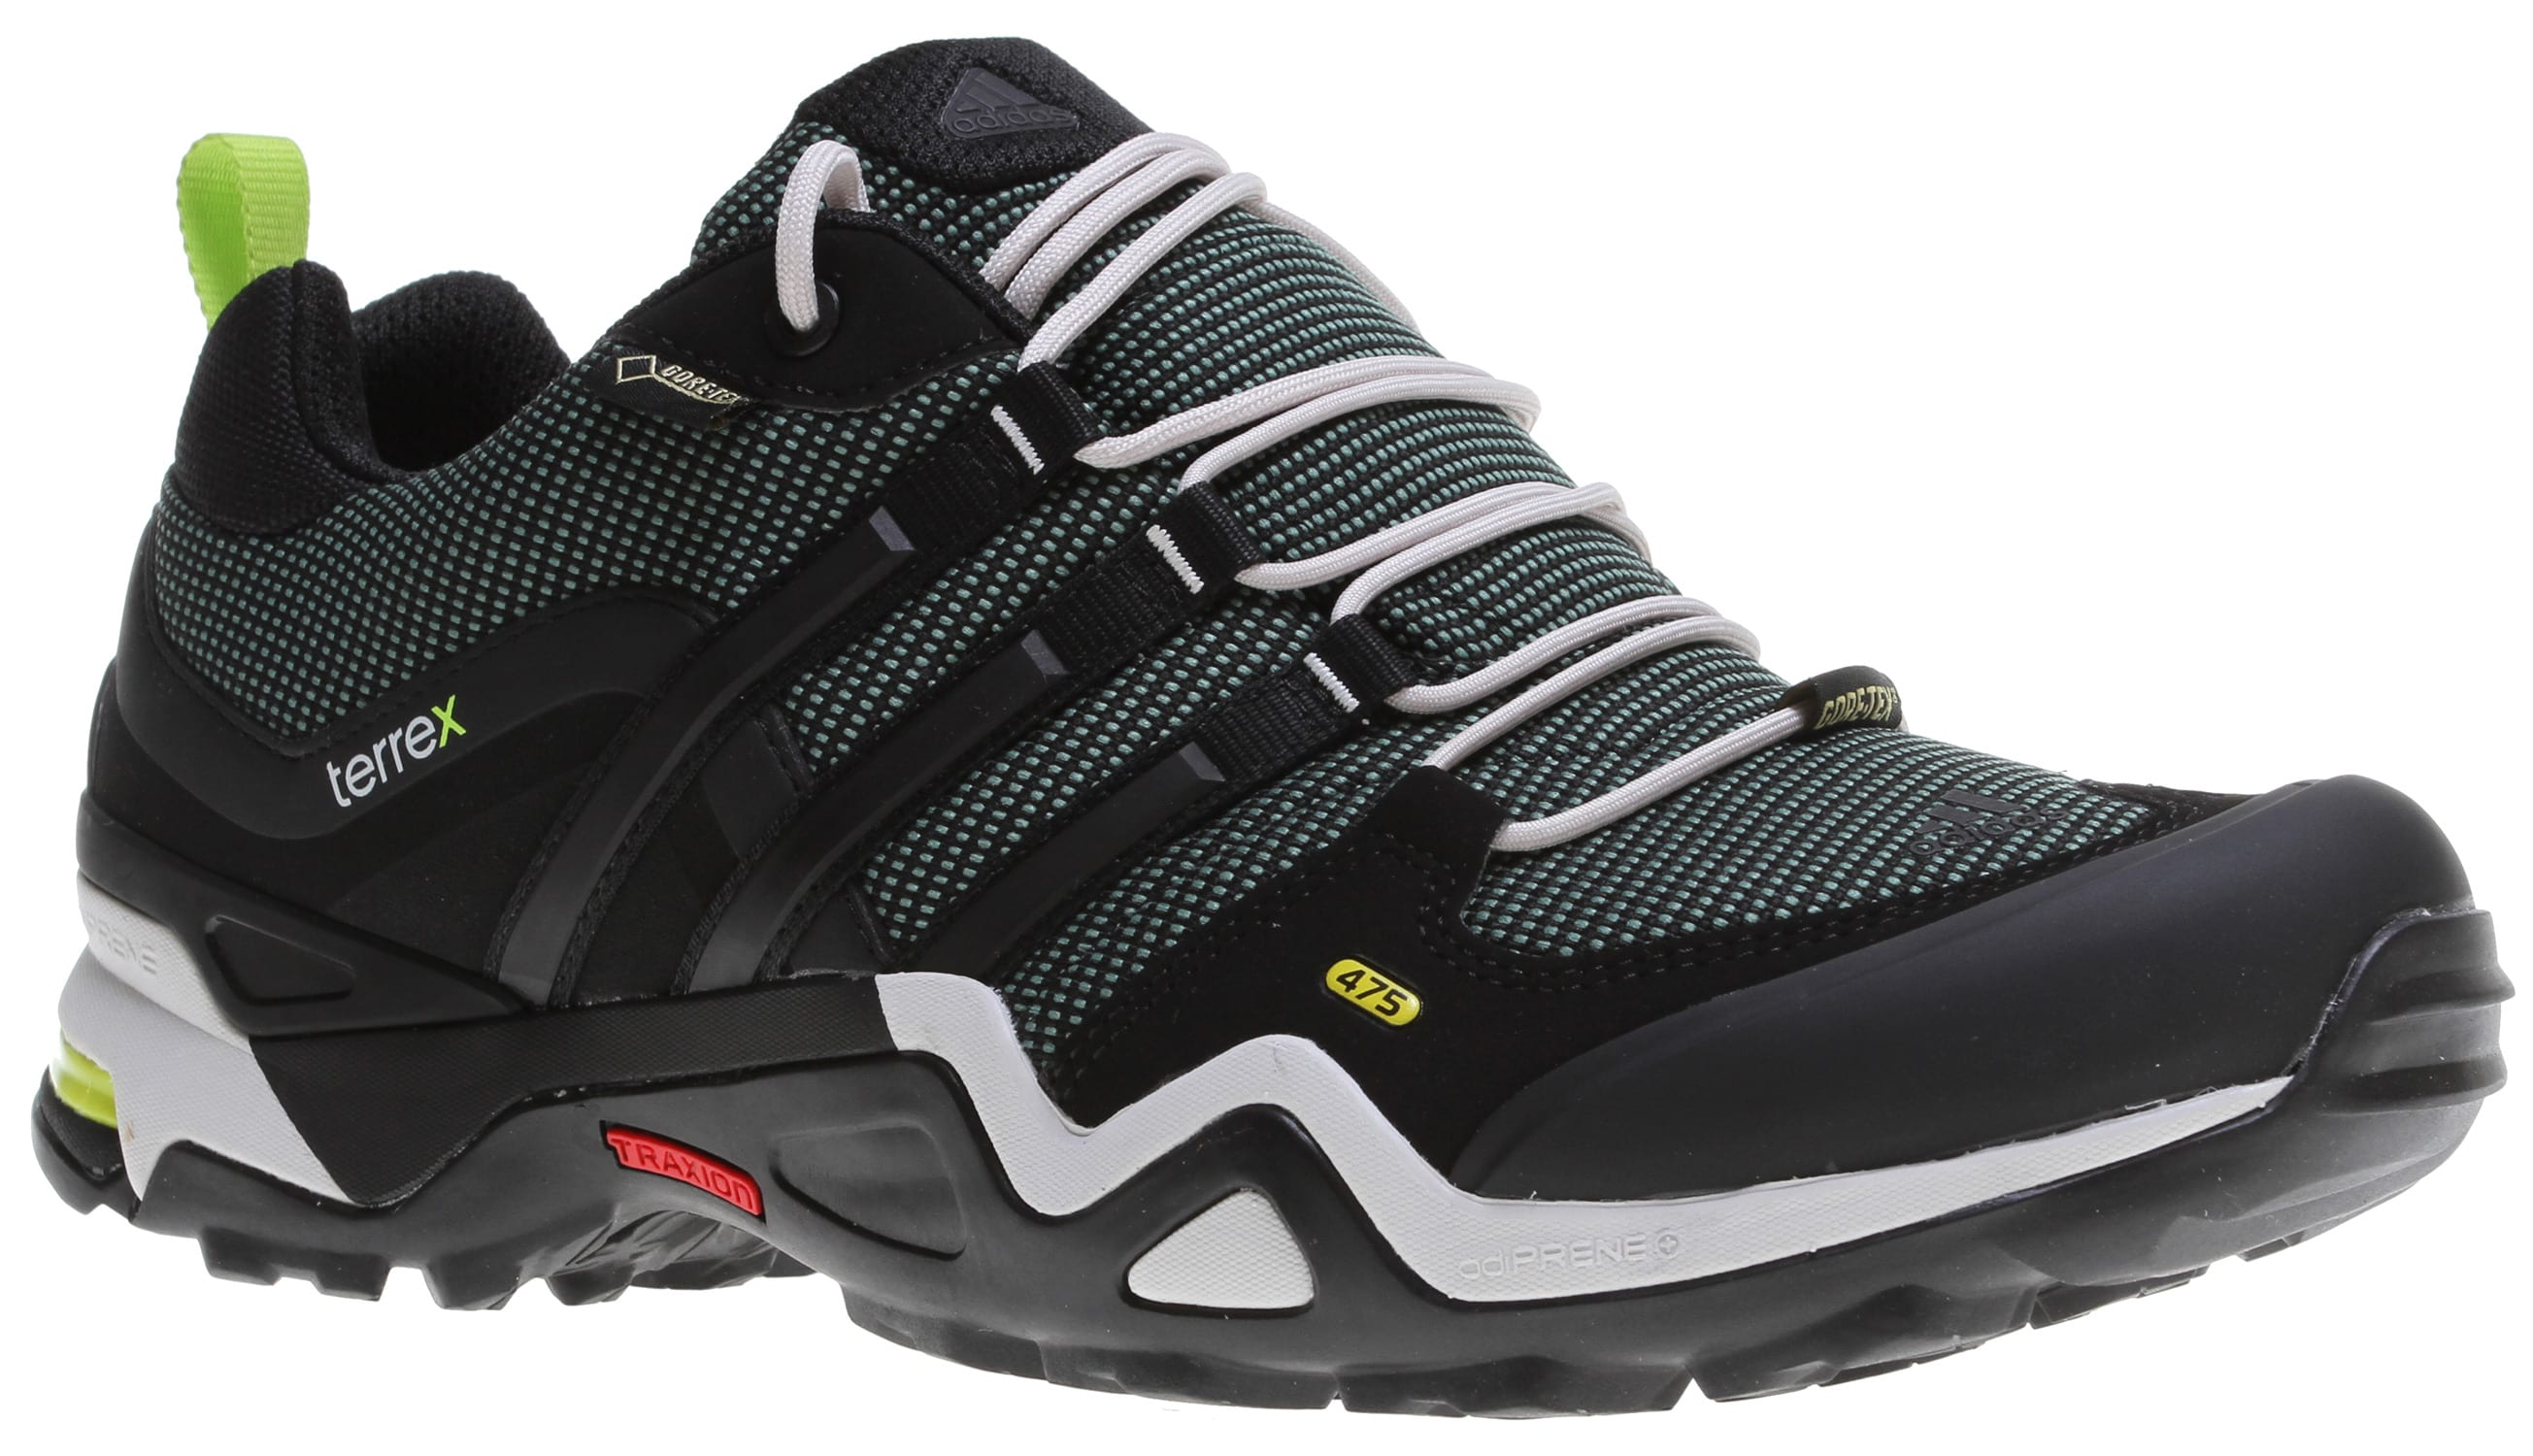 adidas terrex fast x gtx hiking shoes. Black Bedroom Furniture Sets. Home Design Ideas